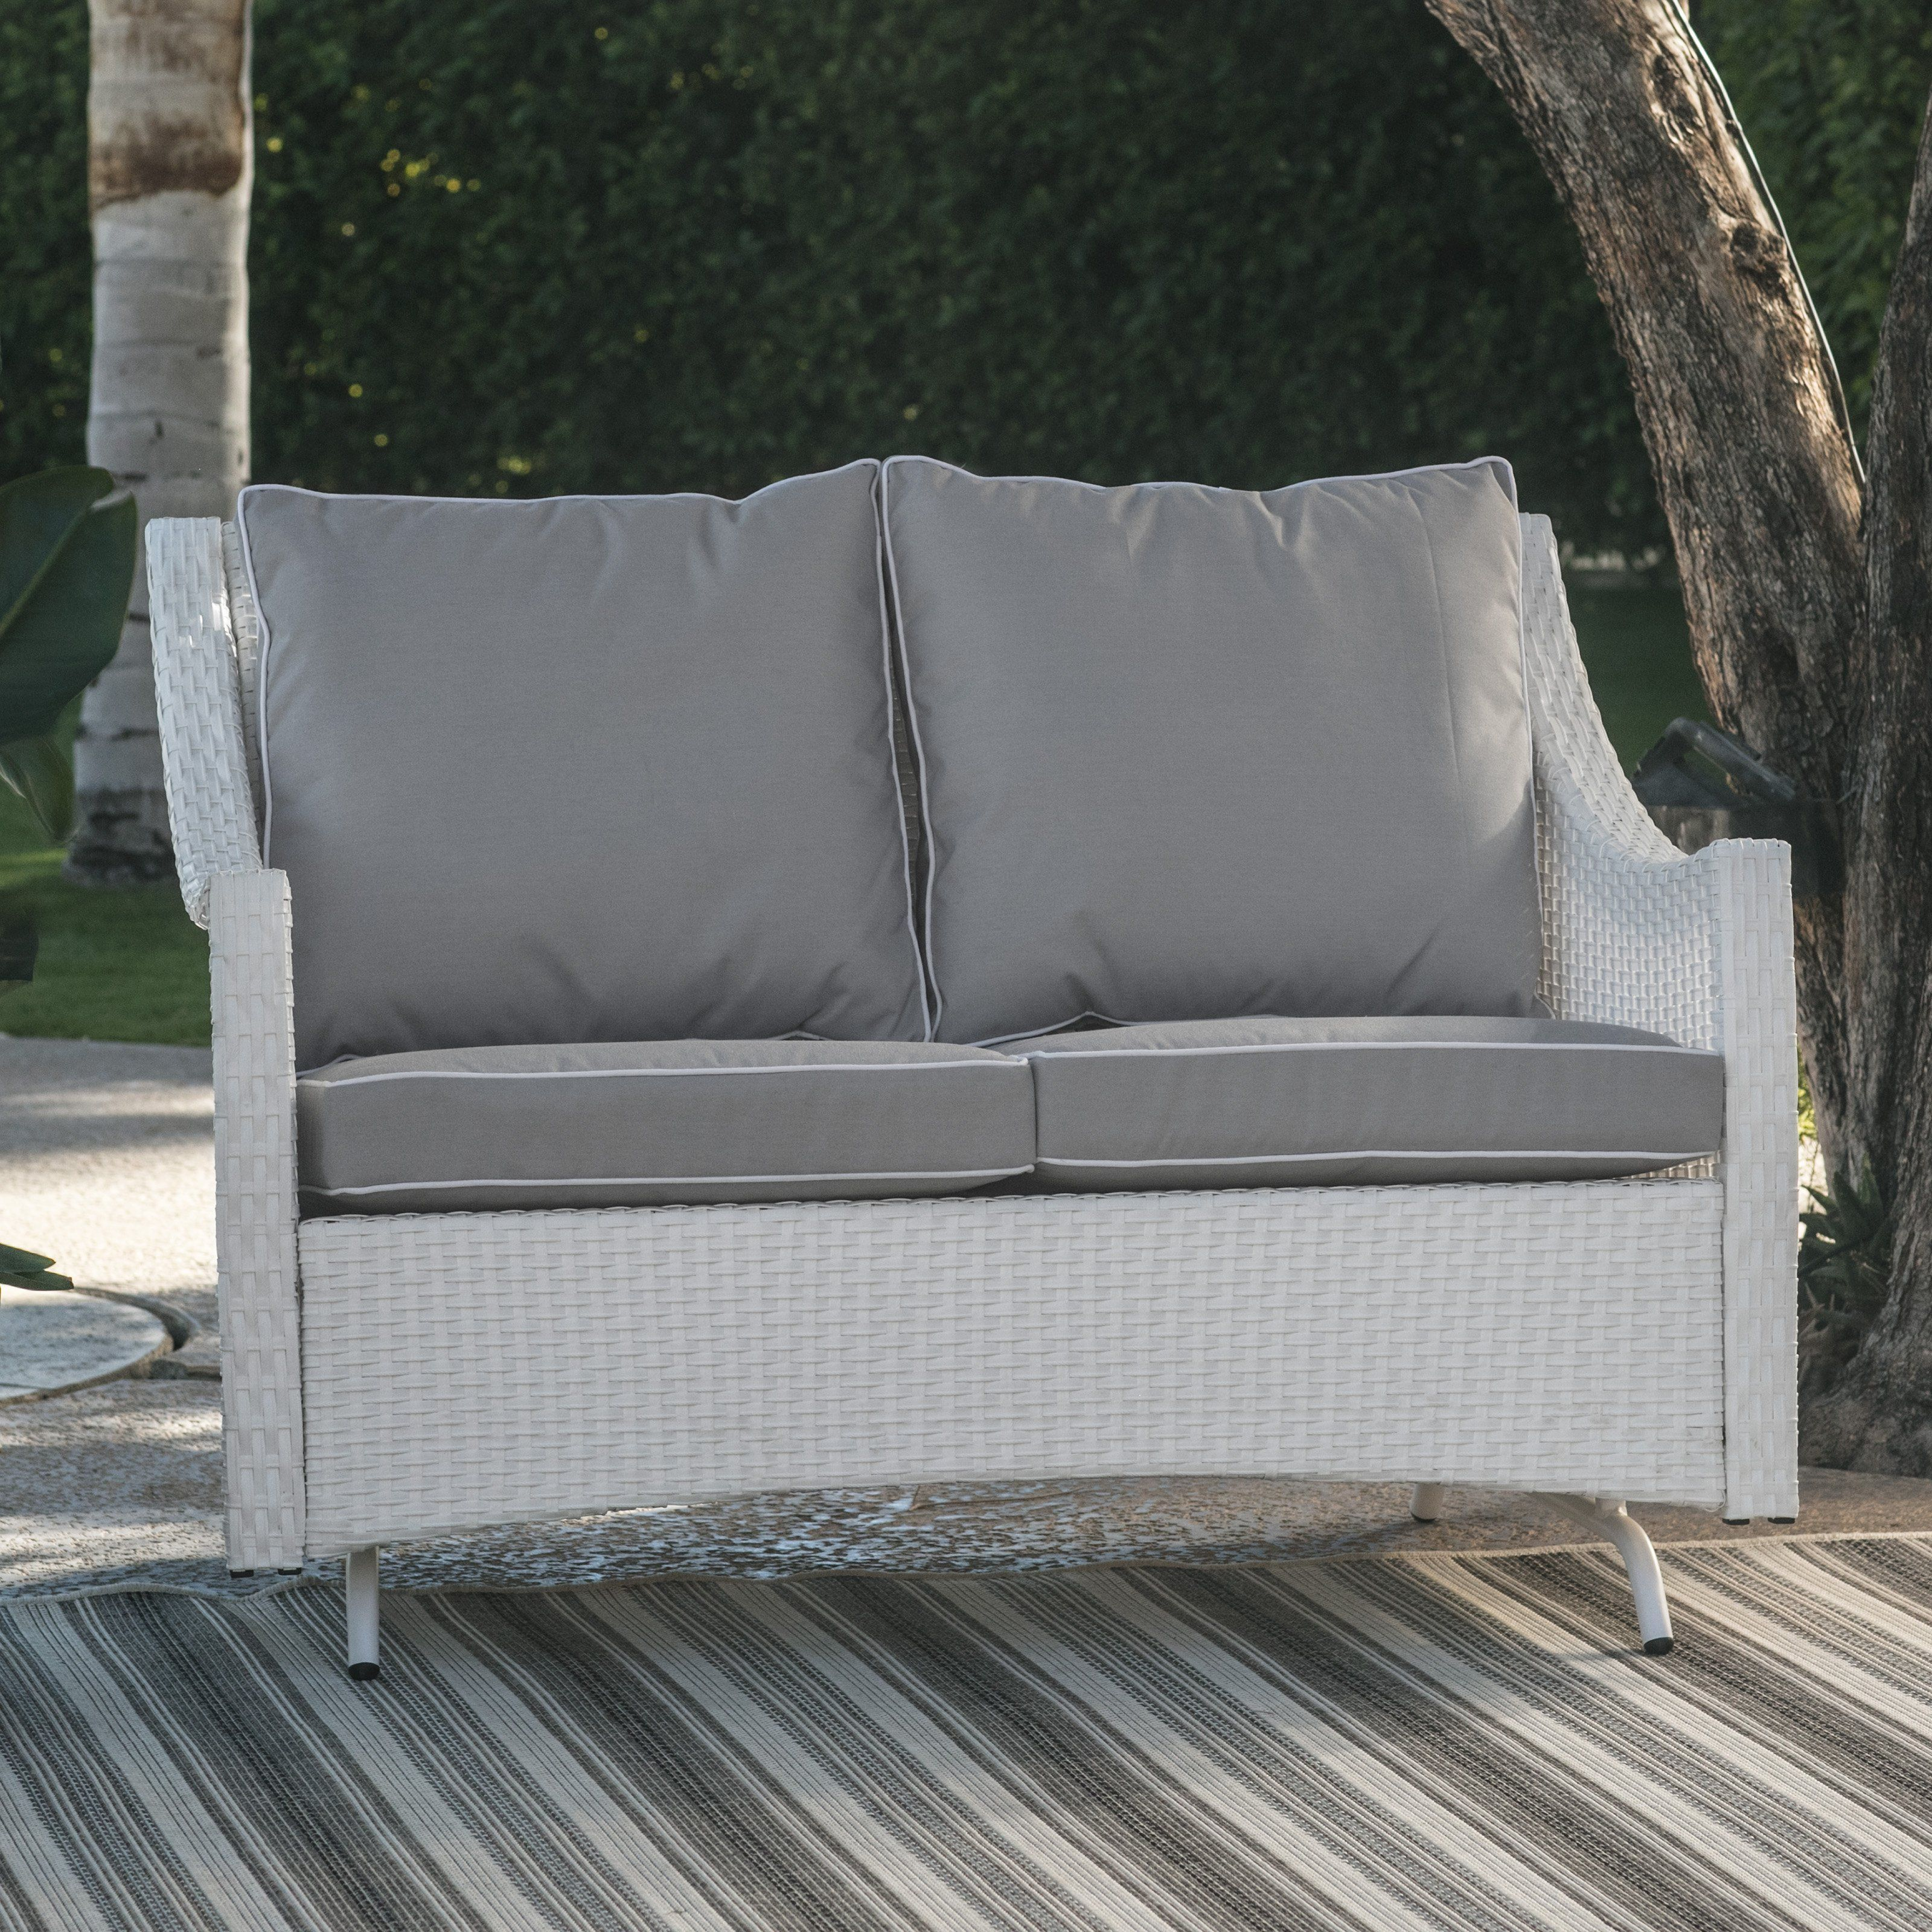 Belham Living Lindau All Weather Wicker Patio Loveseat Glider With Cushion White From Hayneedle